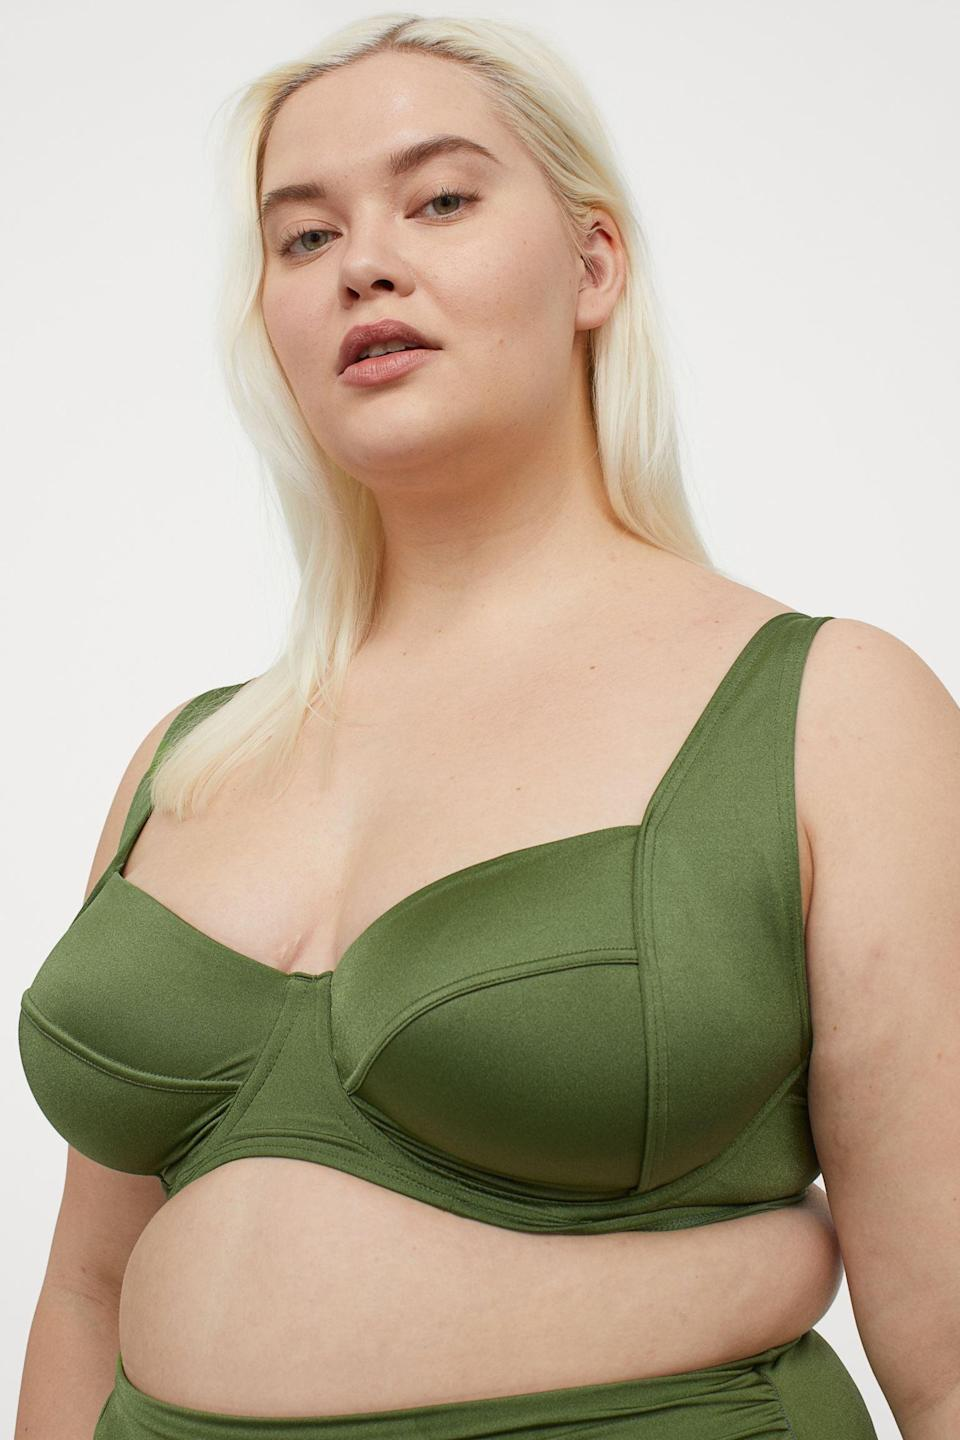 <p>The lined <span>H&amp;M+ Unpadded Bikini Top</span> ($25) and stretchy <span>H&amp;M+ Bikini Bottoms</span> ($20) make this bikini optimize this bikini for a secure, comfortable fit. You'll like the underwire cups that will nicely shape your bust and offer extra support, as well as the wide, adjustable shoulder straps that'll ensure you feel good at all times.</p>